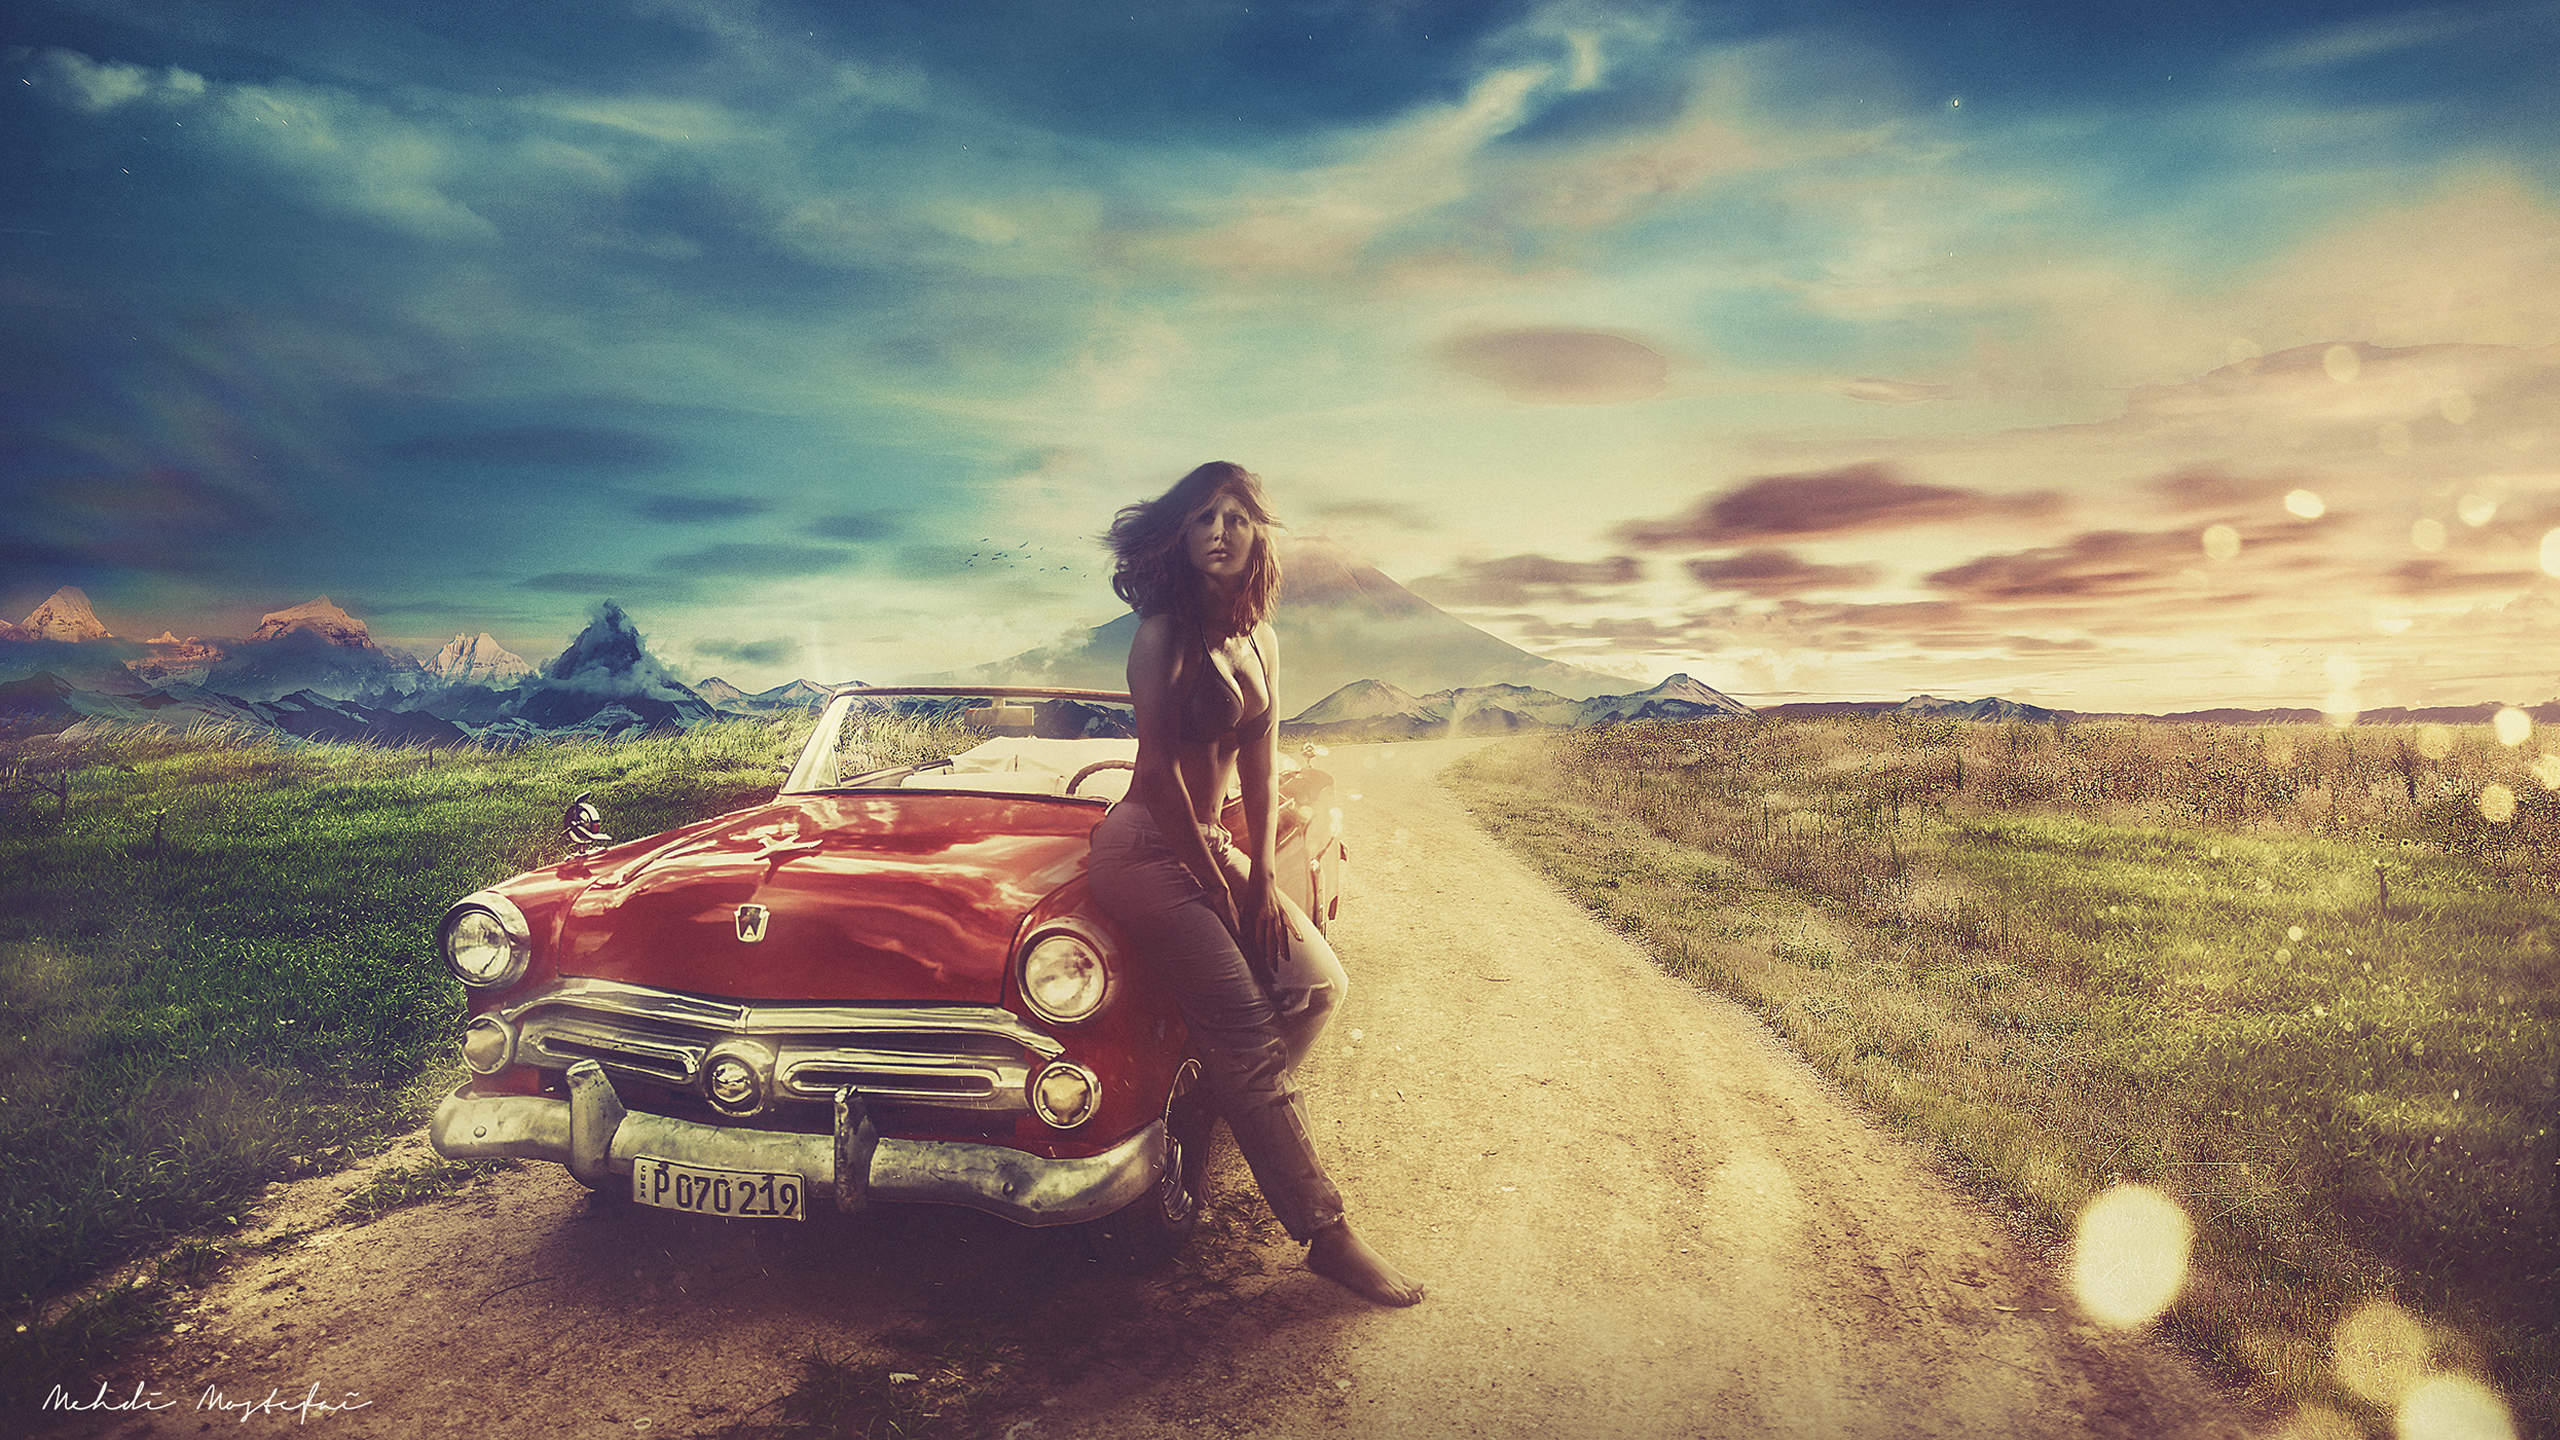 Vintage Car Hot Girl Wallpapers Hd Wallpapers